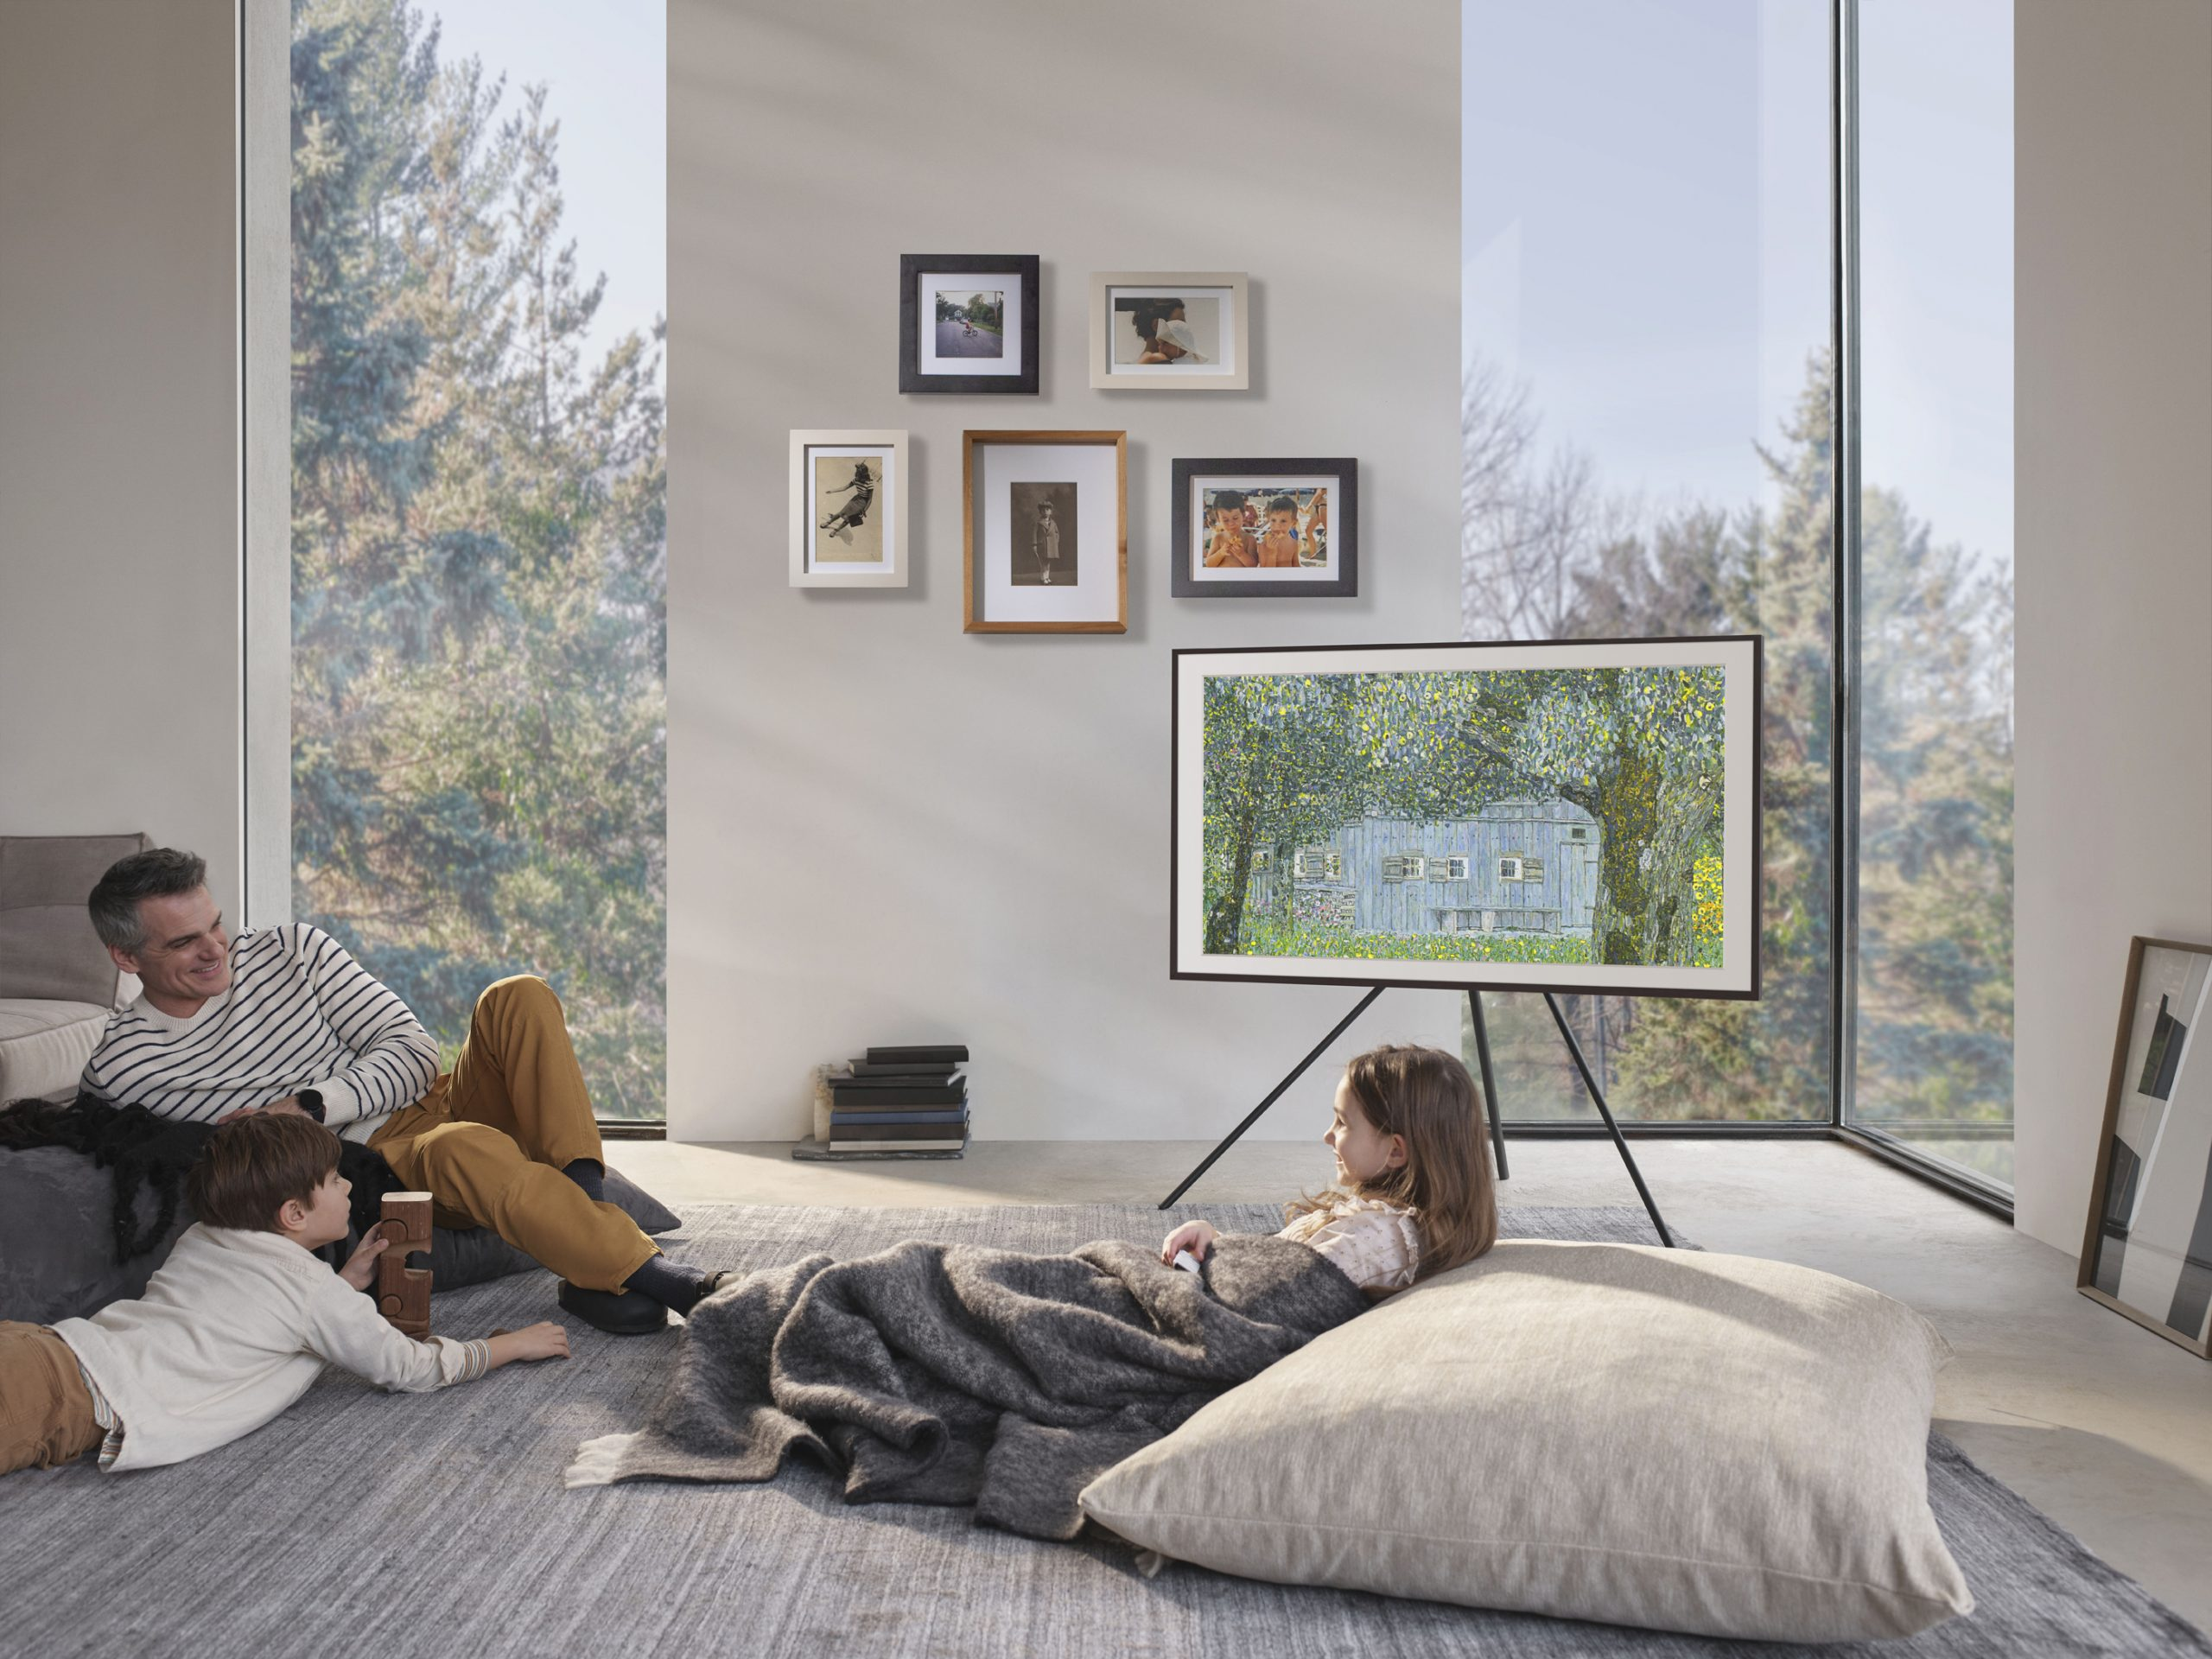 The Frame Lifestyle Samsung 1 scaled A Work Of Art: Samsung Rolls Out Pioneering 2020 Lifestyle TVs